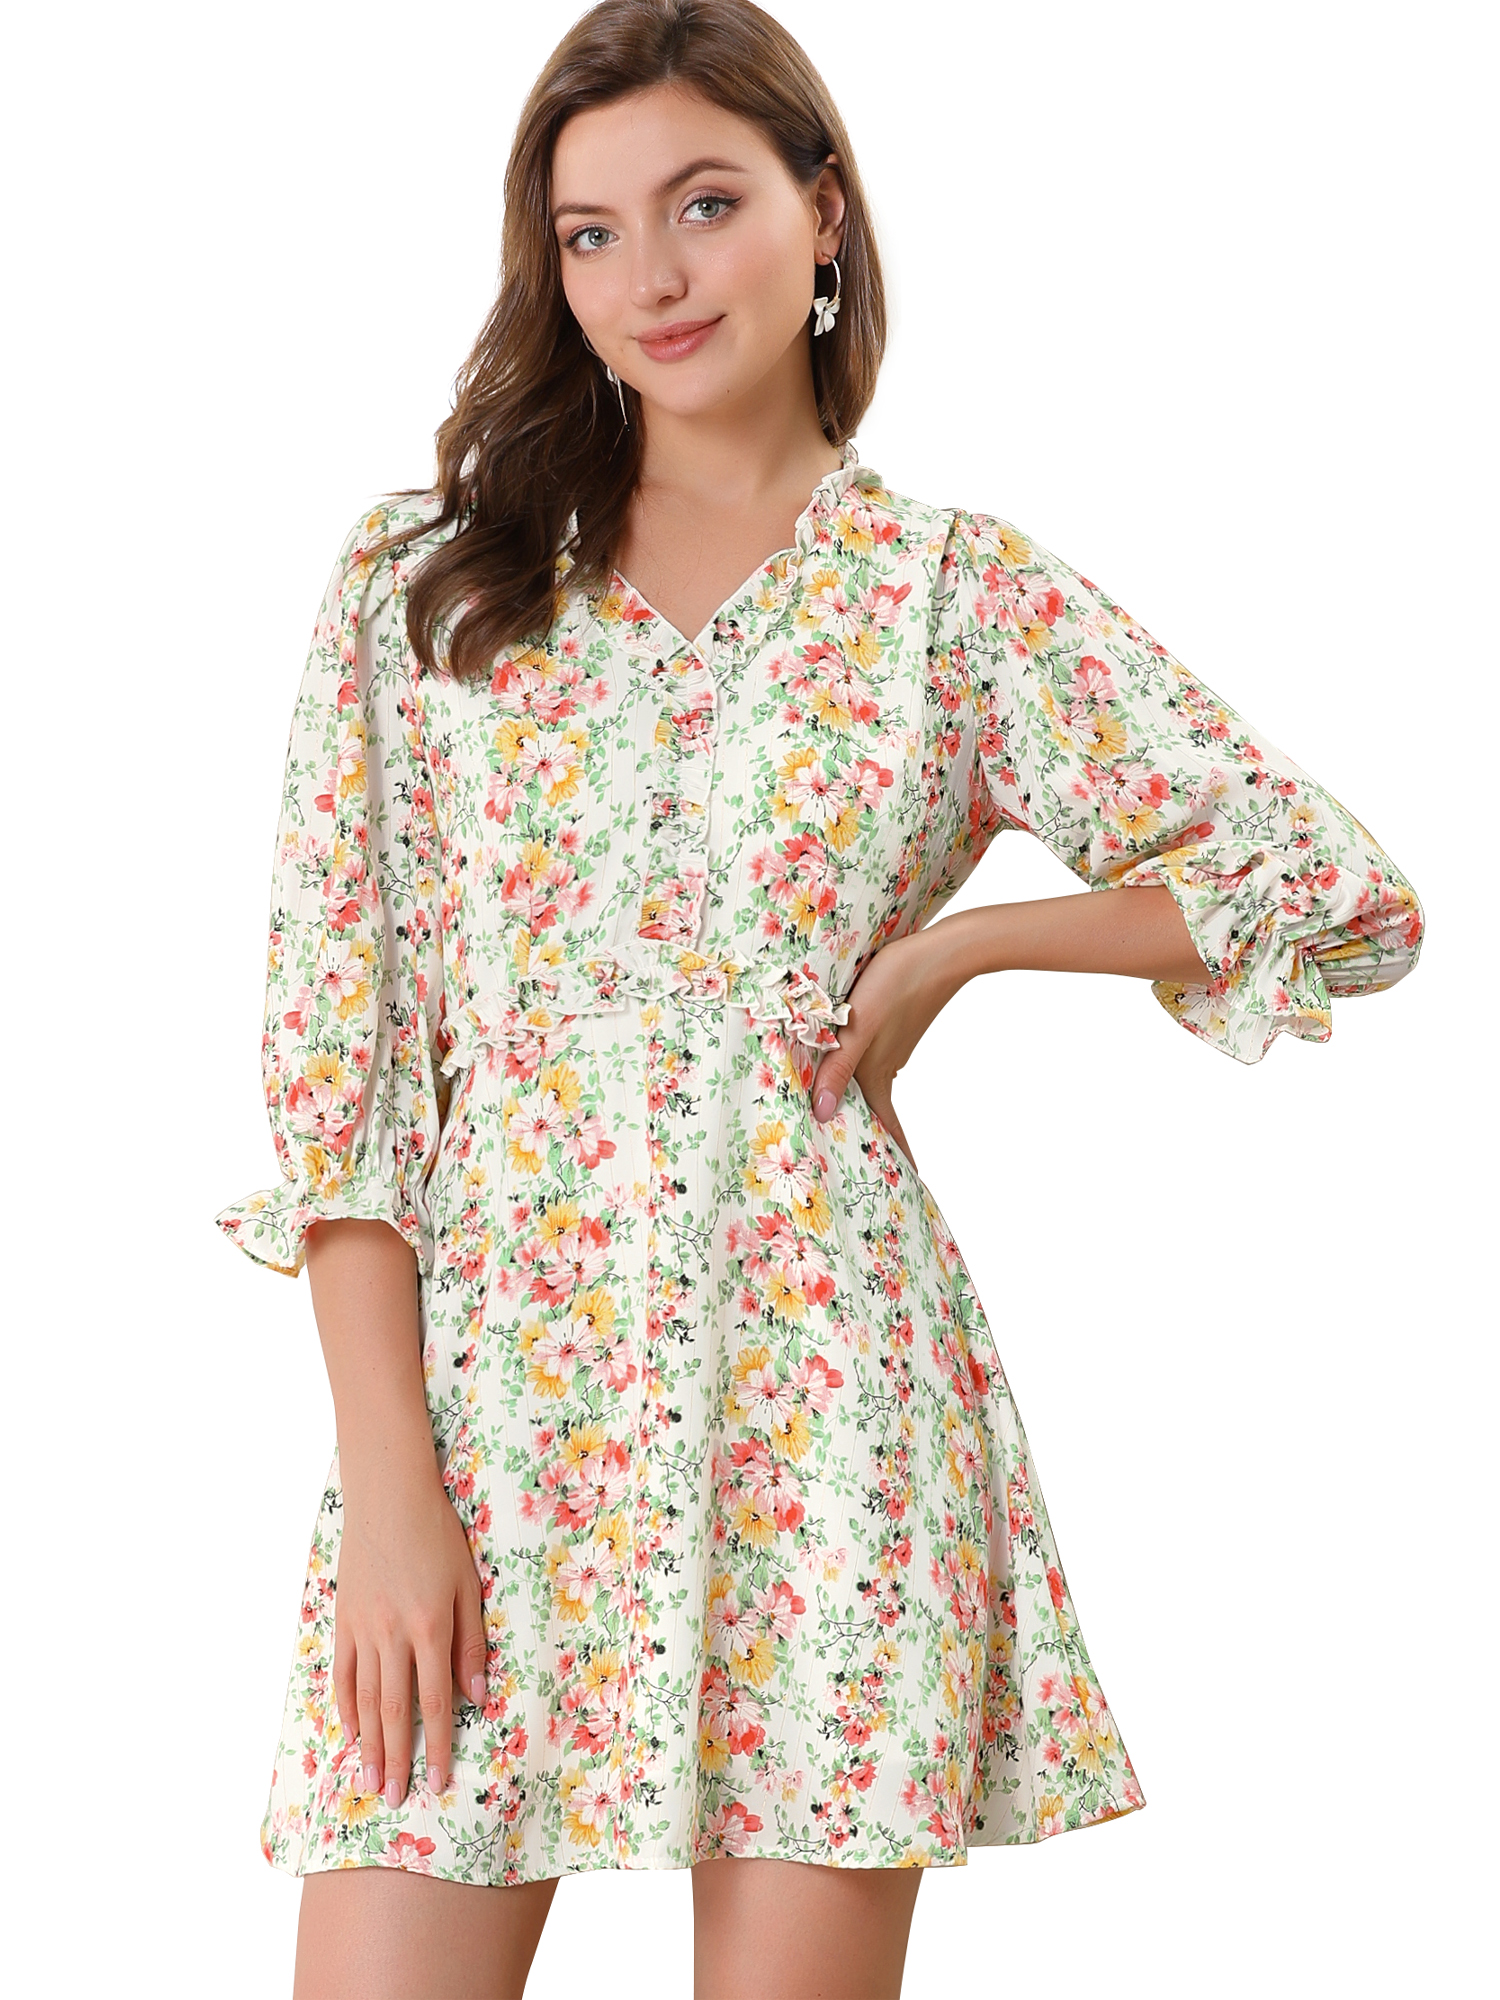 Women's Ruffle Floral 3/4 Sleeve A-line V Neck Flare Dress White L